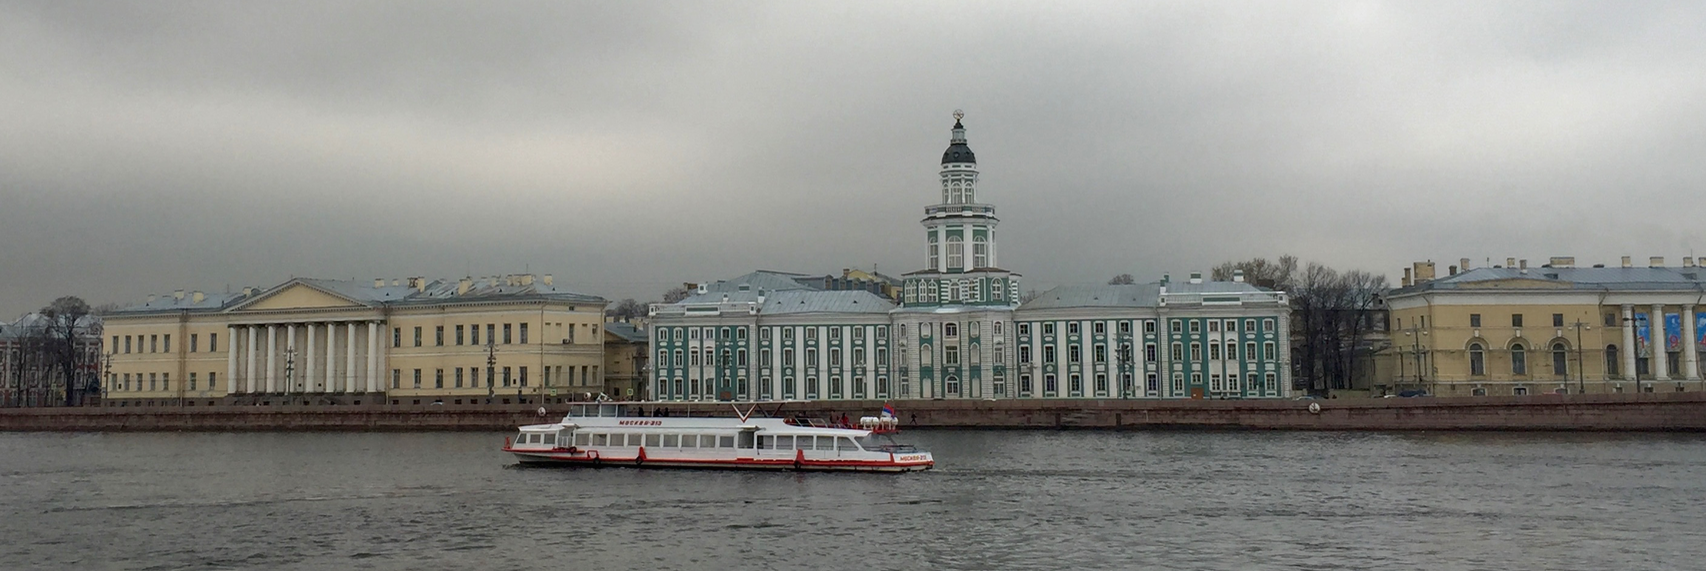 Image 0. On the Neva, the Old Building of the Russian Academy of Sciences, founded by Peter the Great © Yann Potin